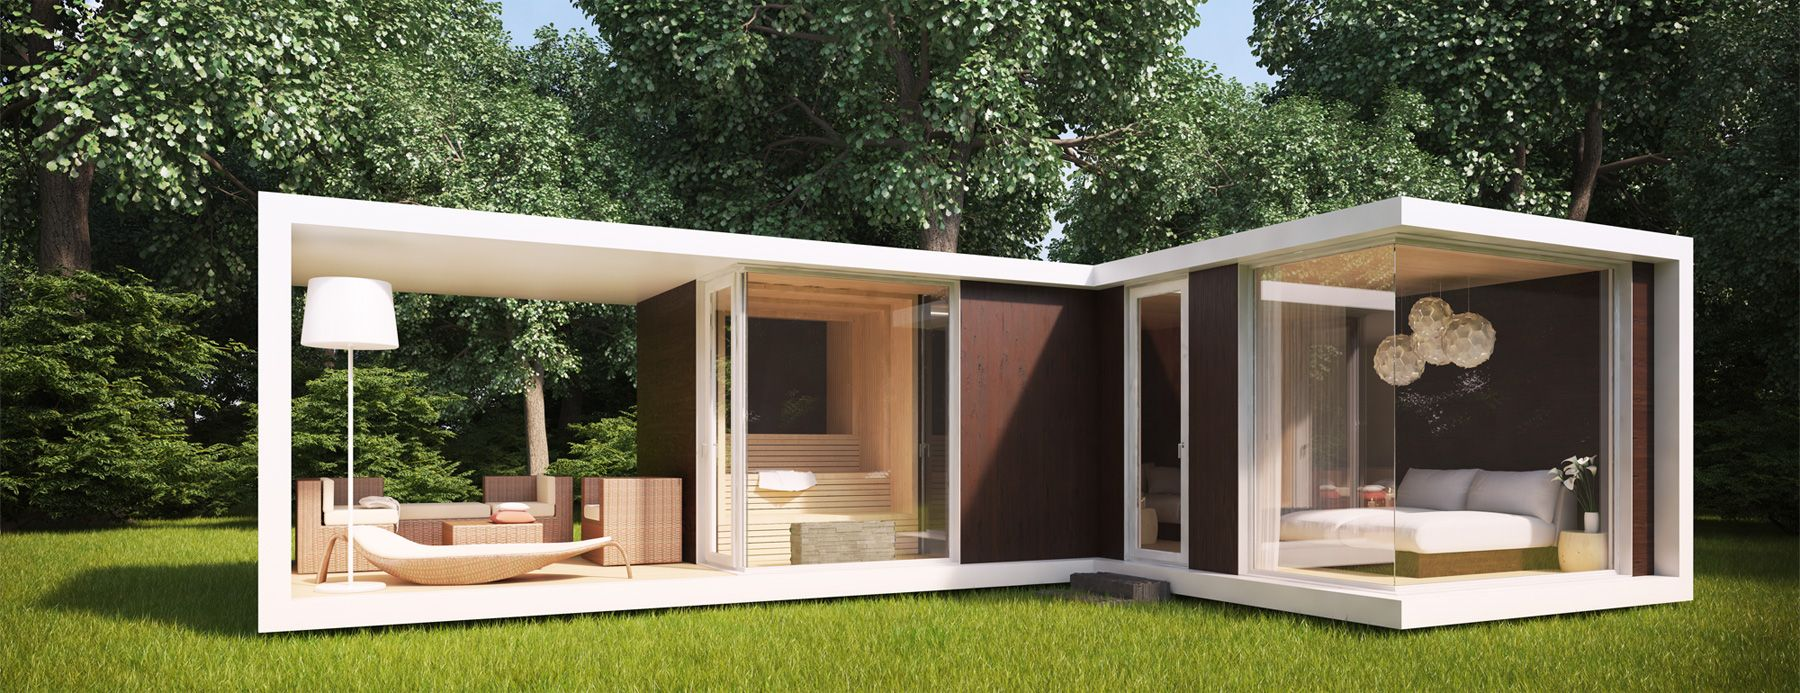 spa cube modulares bauen pre fab container architektur pinterest gartenh tte. Black Bedroom Furniture Sets. Home Design Ideas